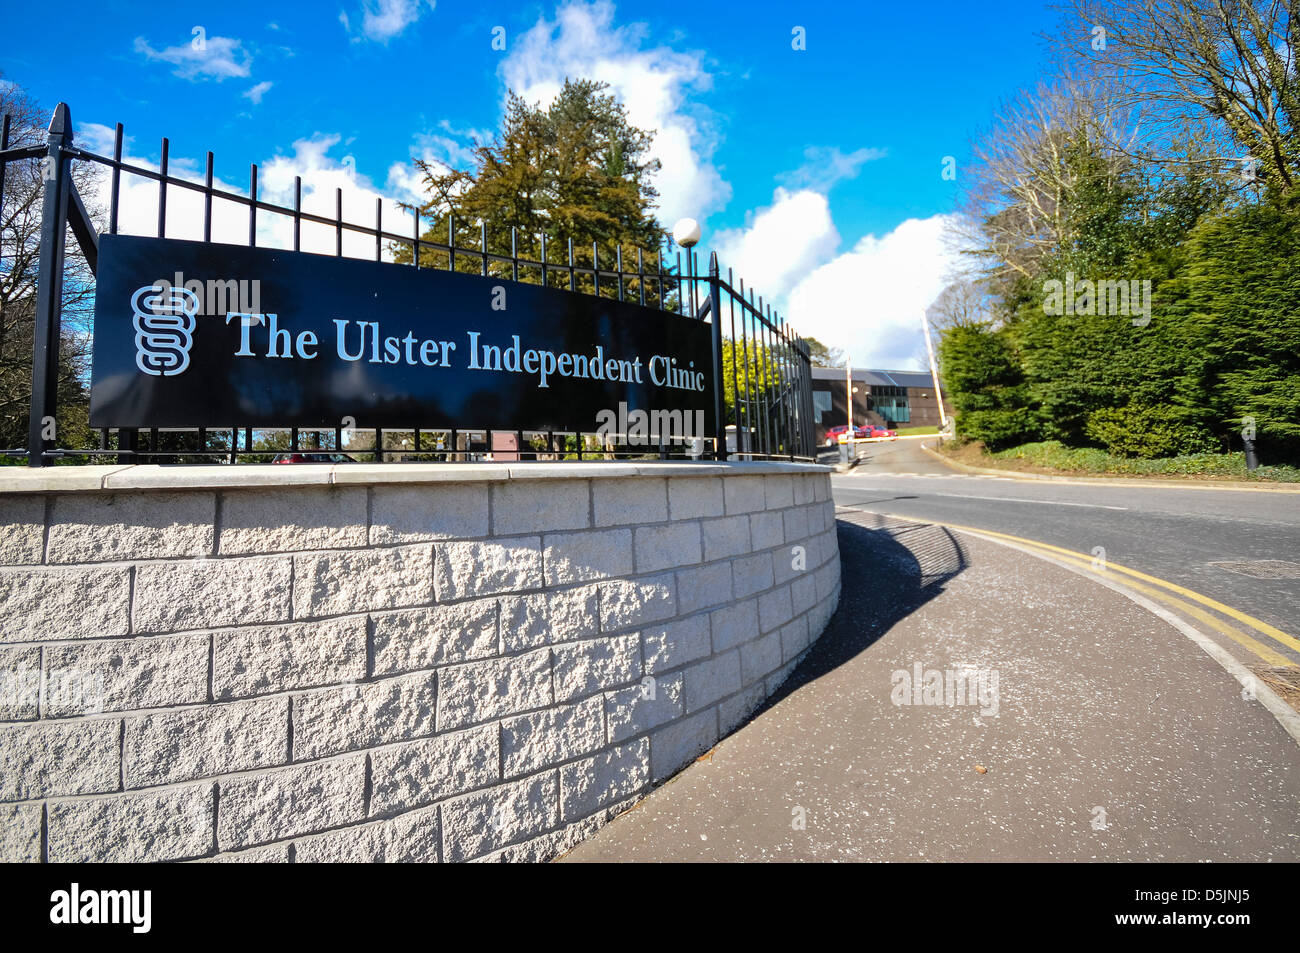 Ulster Independent Clinic - Stock Image